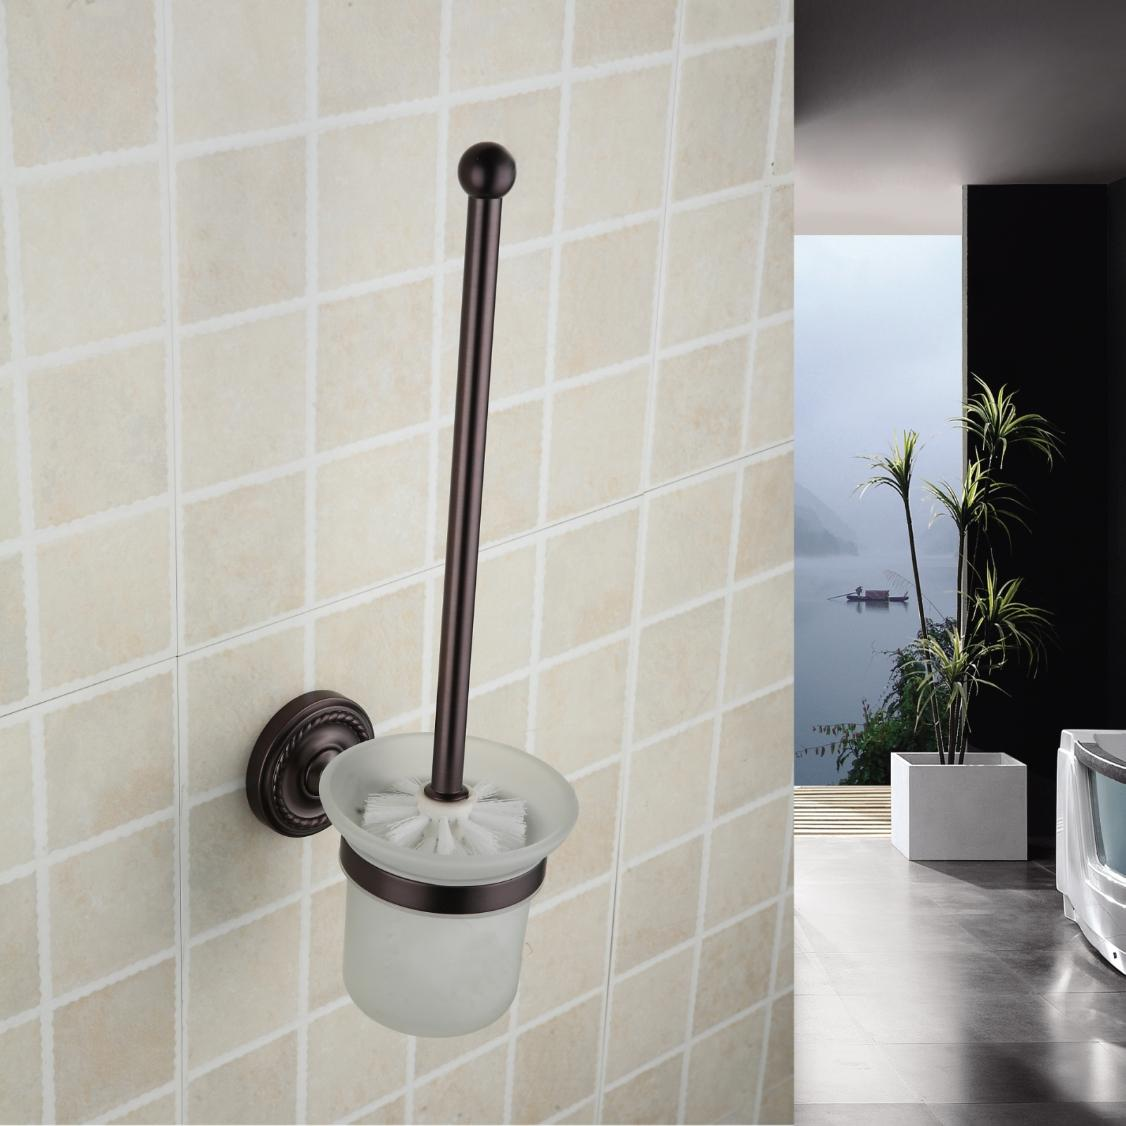 Oil Rubbed Bronze Wall-mounted Wall-mounted Toilet Brush Holder ORB1005